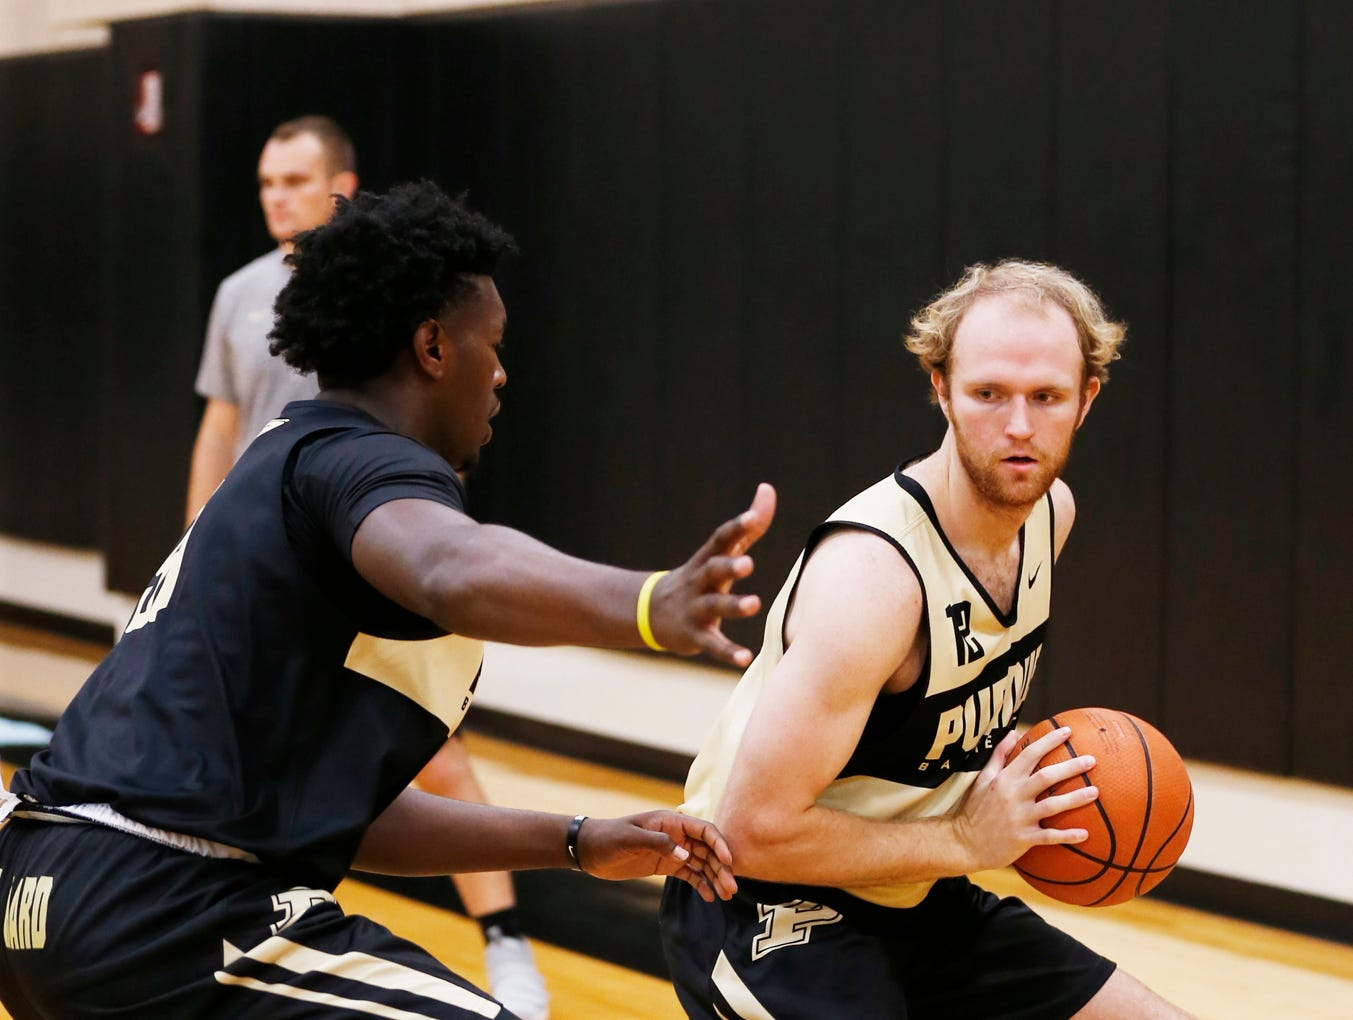 Evan Boudreaux looks to pass while defended by Trevion Williams during the first official practice of the season for Purdue men's basketball Tuesday, September 25, 2018, at Cardinal Court in Mackey Arena.